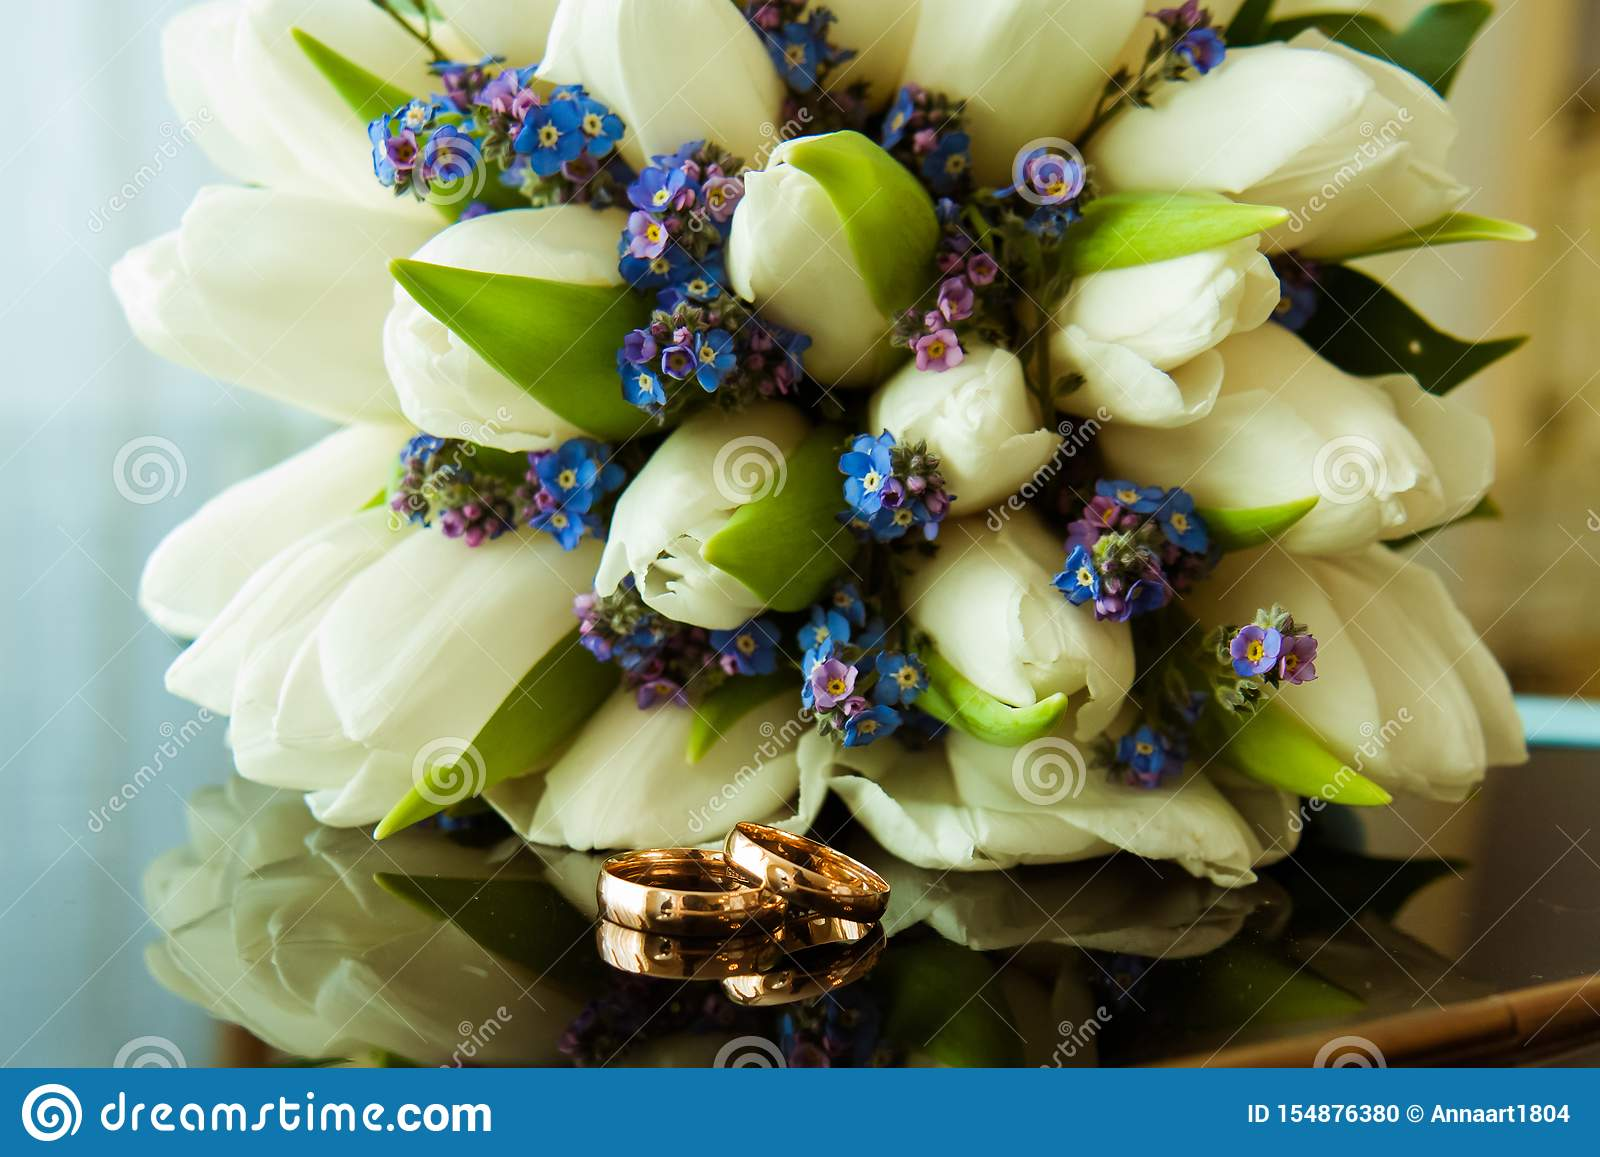 Wedding rings of the bride and groom on a Beautiful wedding bouquet of white tulips